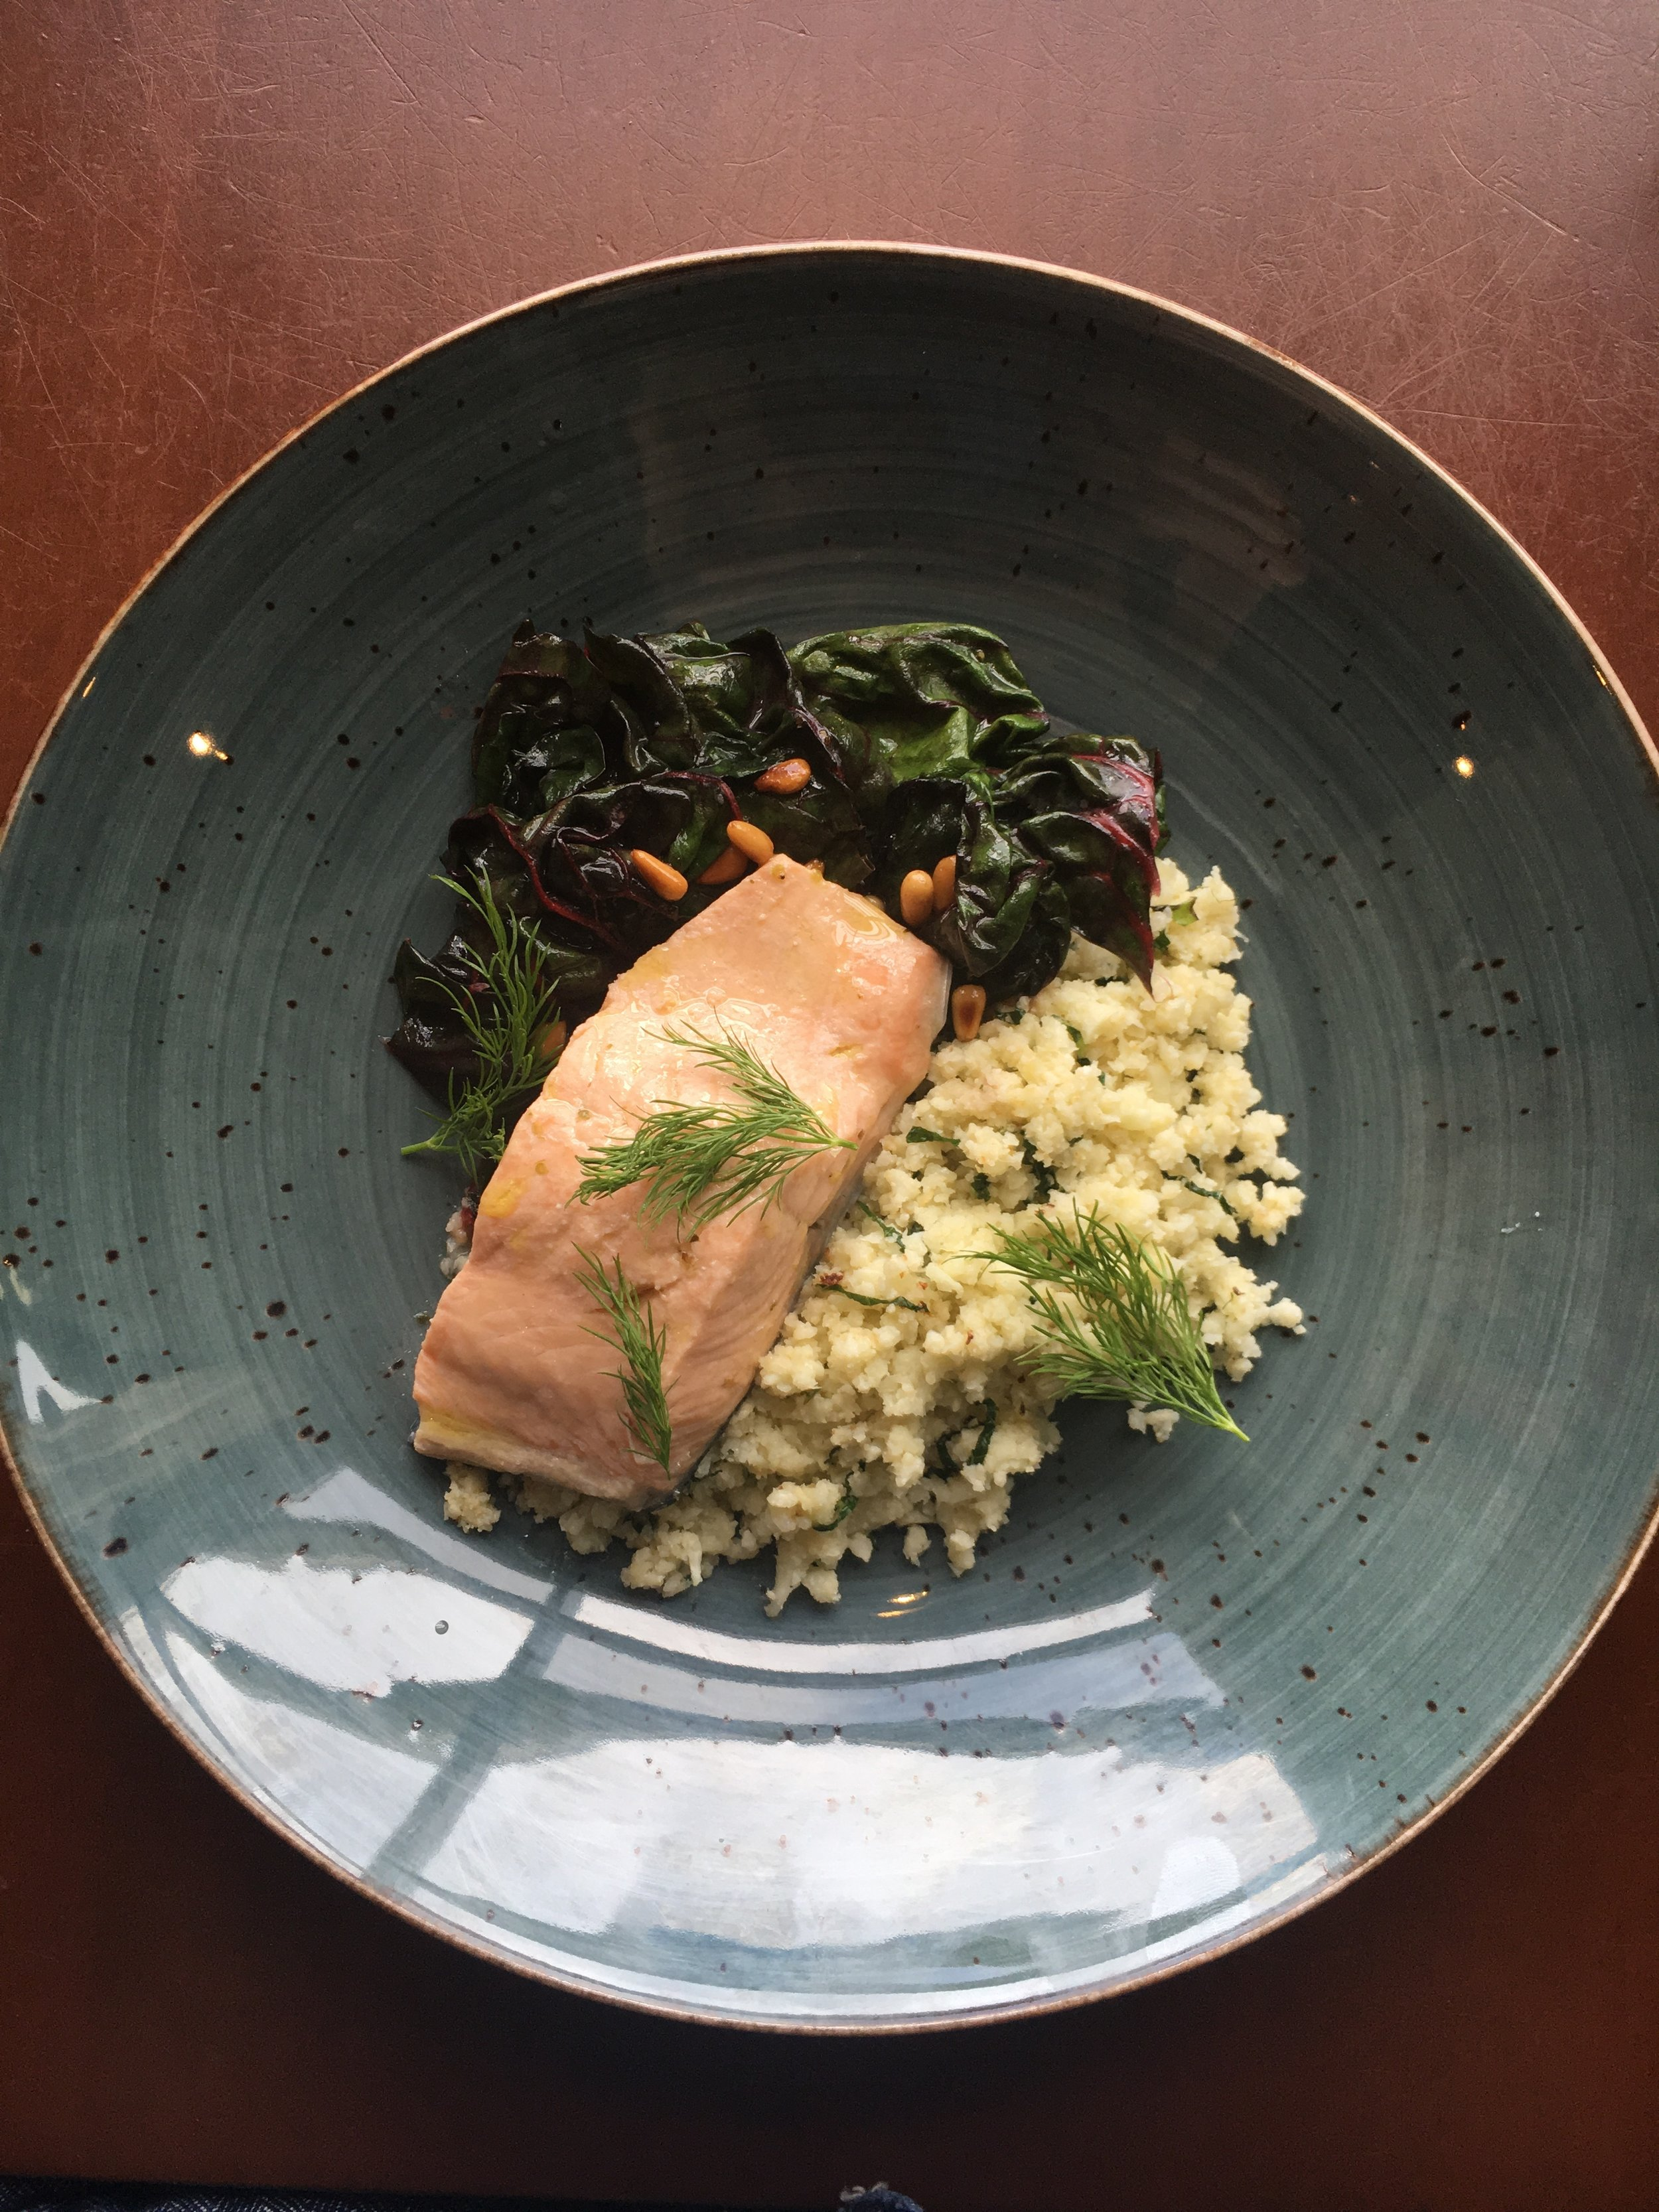 """KETO COOKING WITH CHEF RUBEN RAPETTI / POACHED SALMON WITH CAULIFLOWER """"RISOTTO"""" AND SWISS CHARD by Jen Fisch via Keto In The City"""